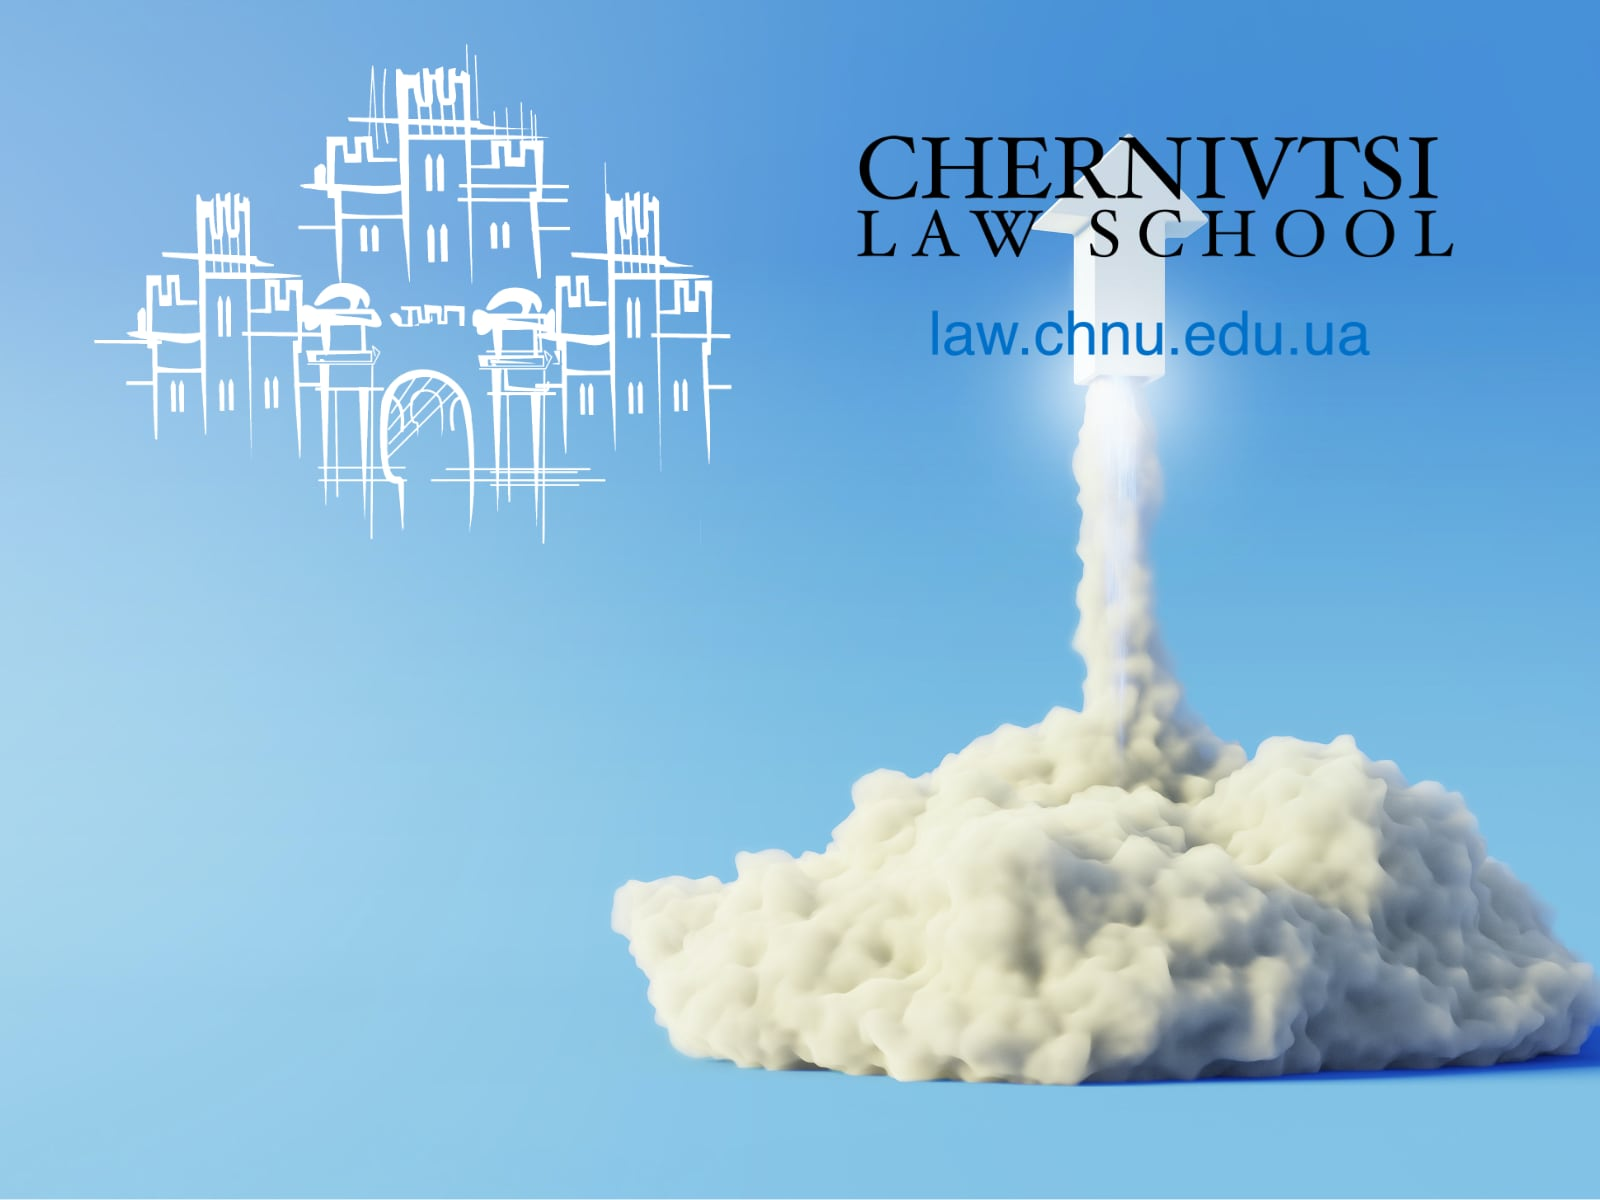 Lessons of creative success at Chernivtsi Law School